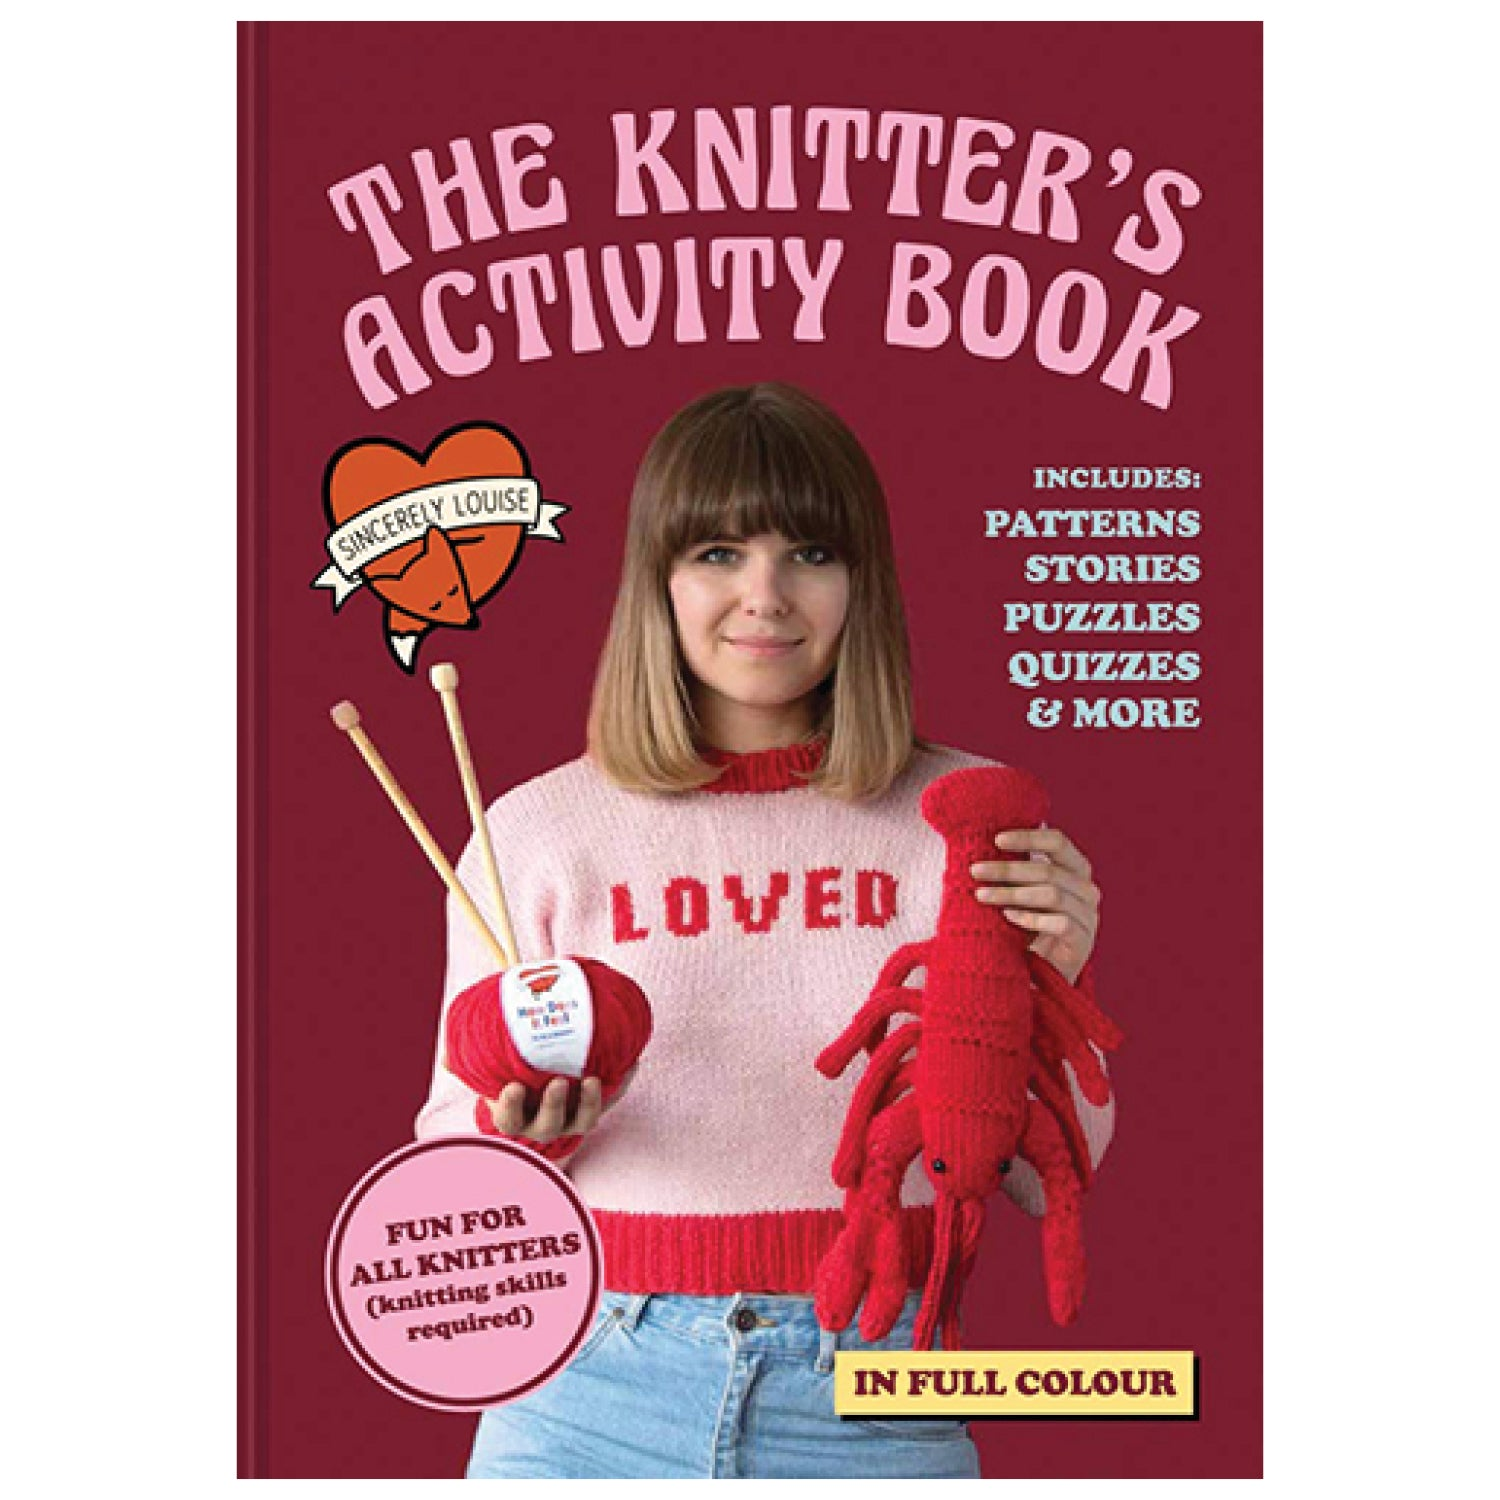 The Knitter's Activity Book - Signed Copy